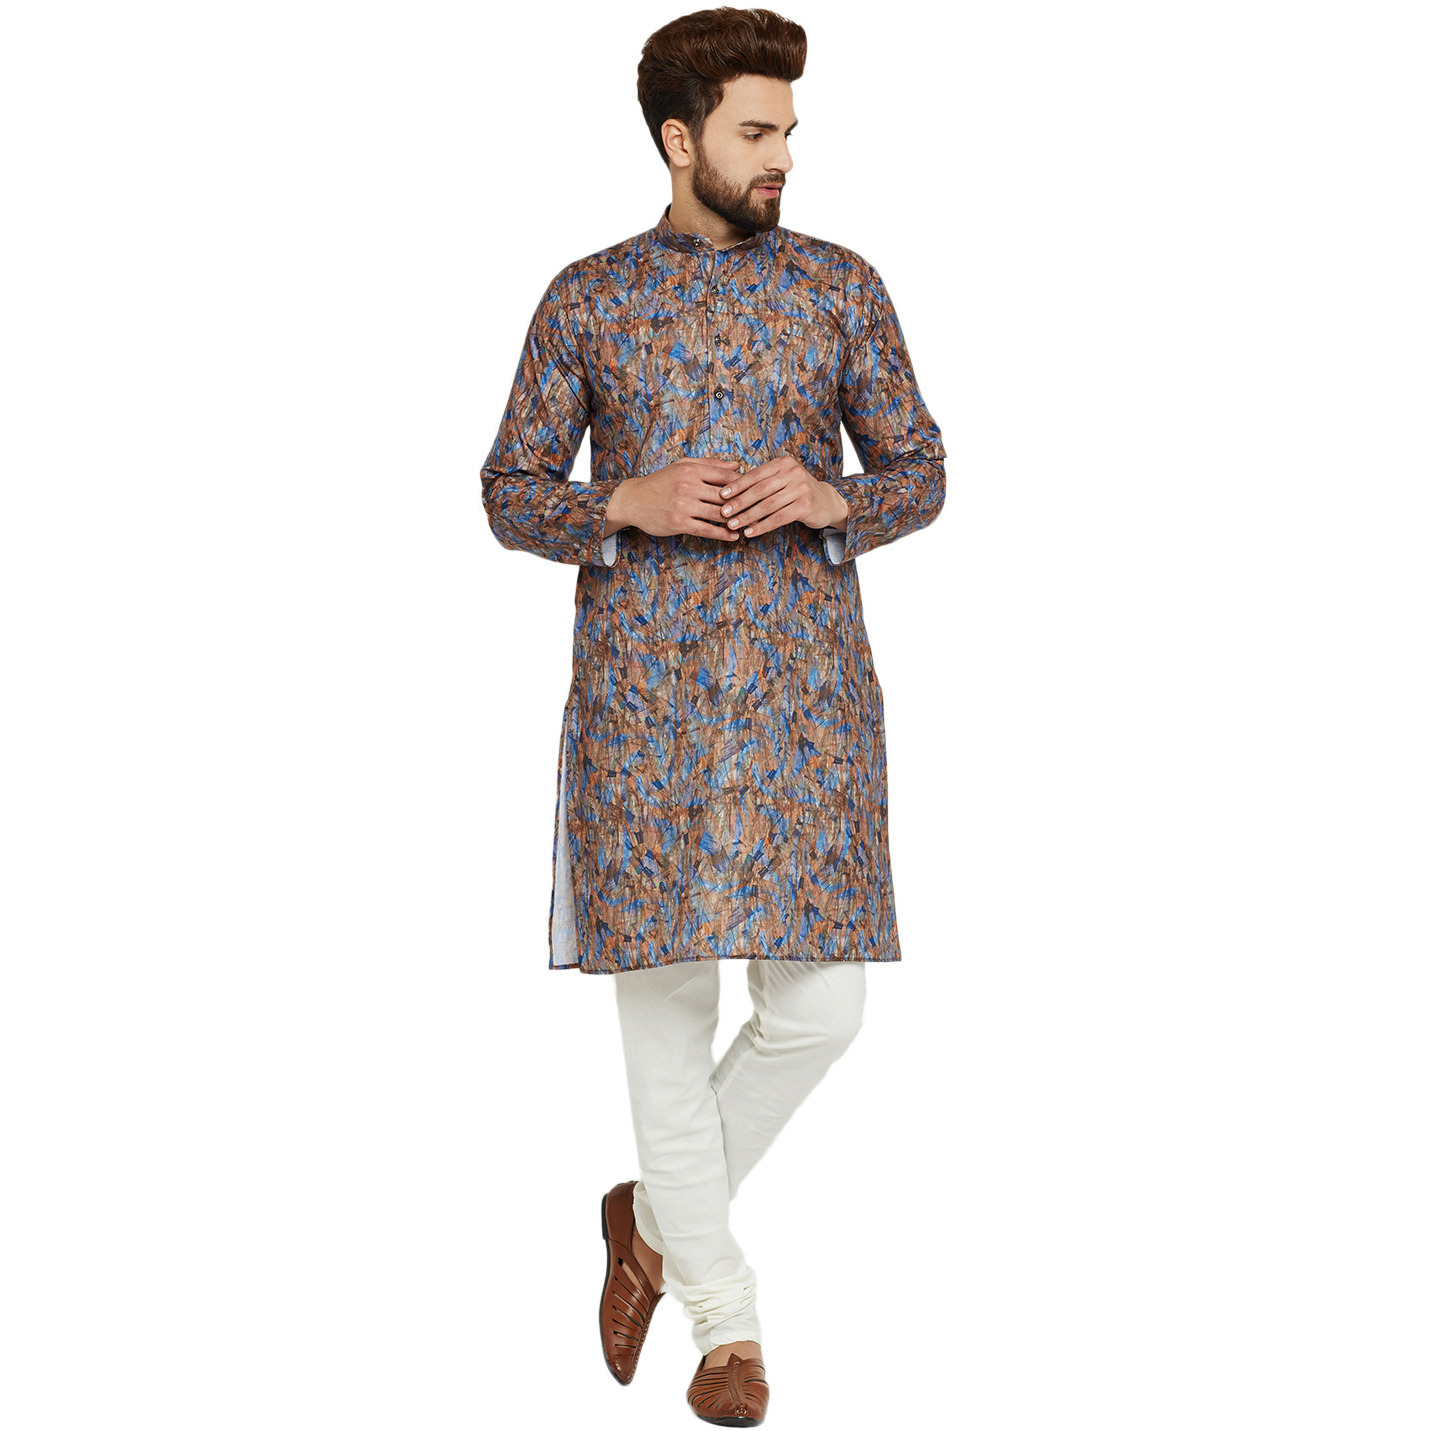 Mens Silk Multicolored Printed Designer Kurta Churidaar Set Long Sleeve Ban collar Regular Fit